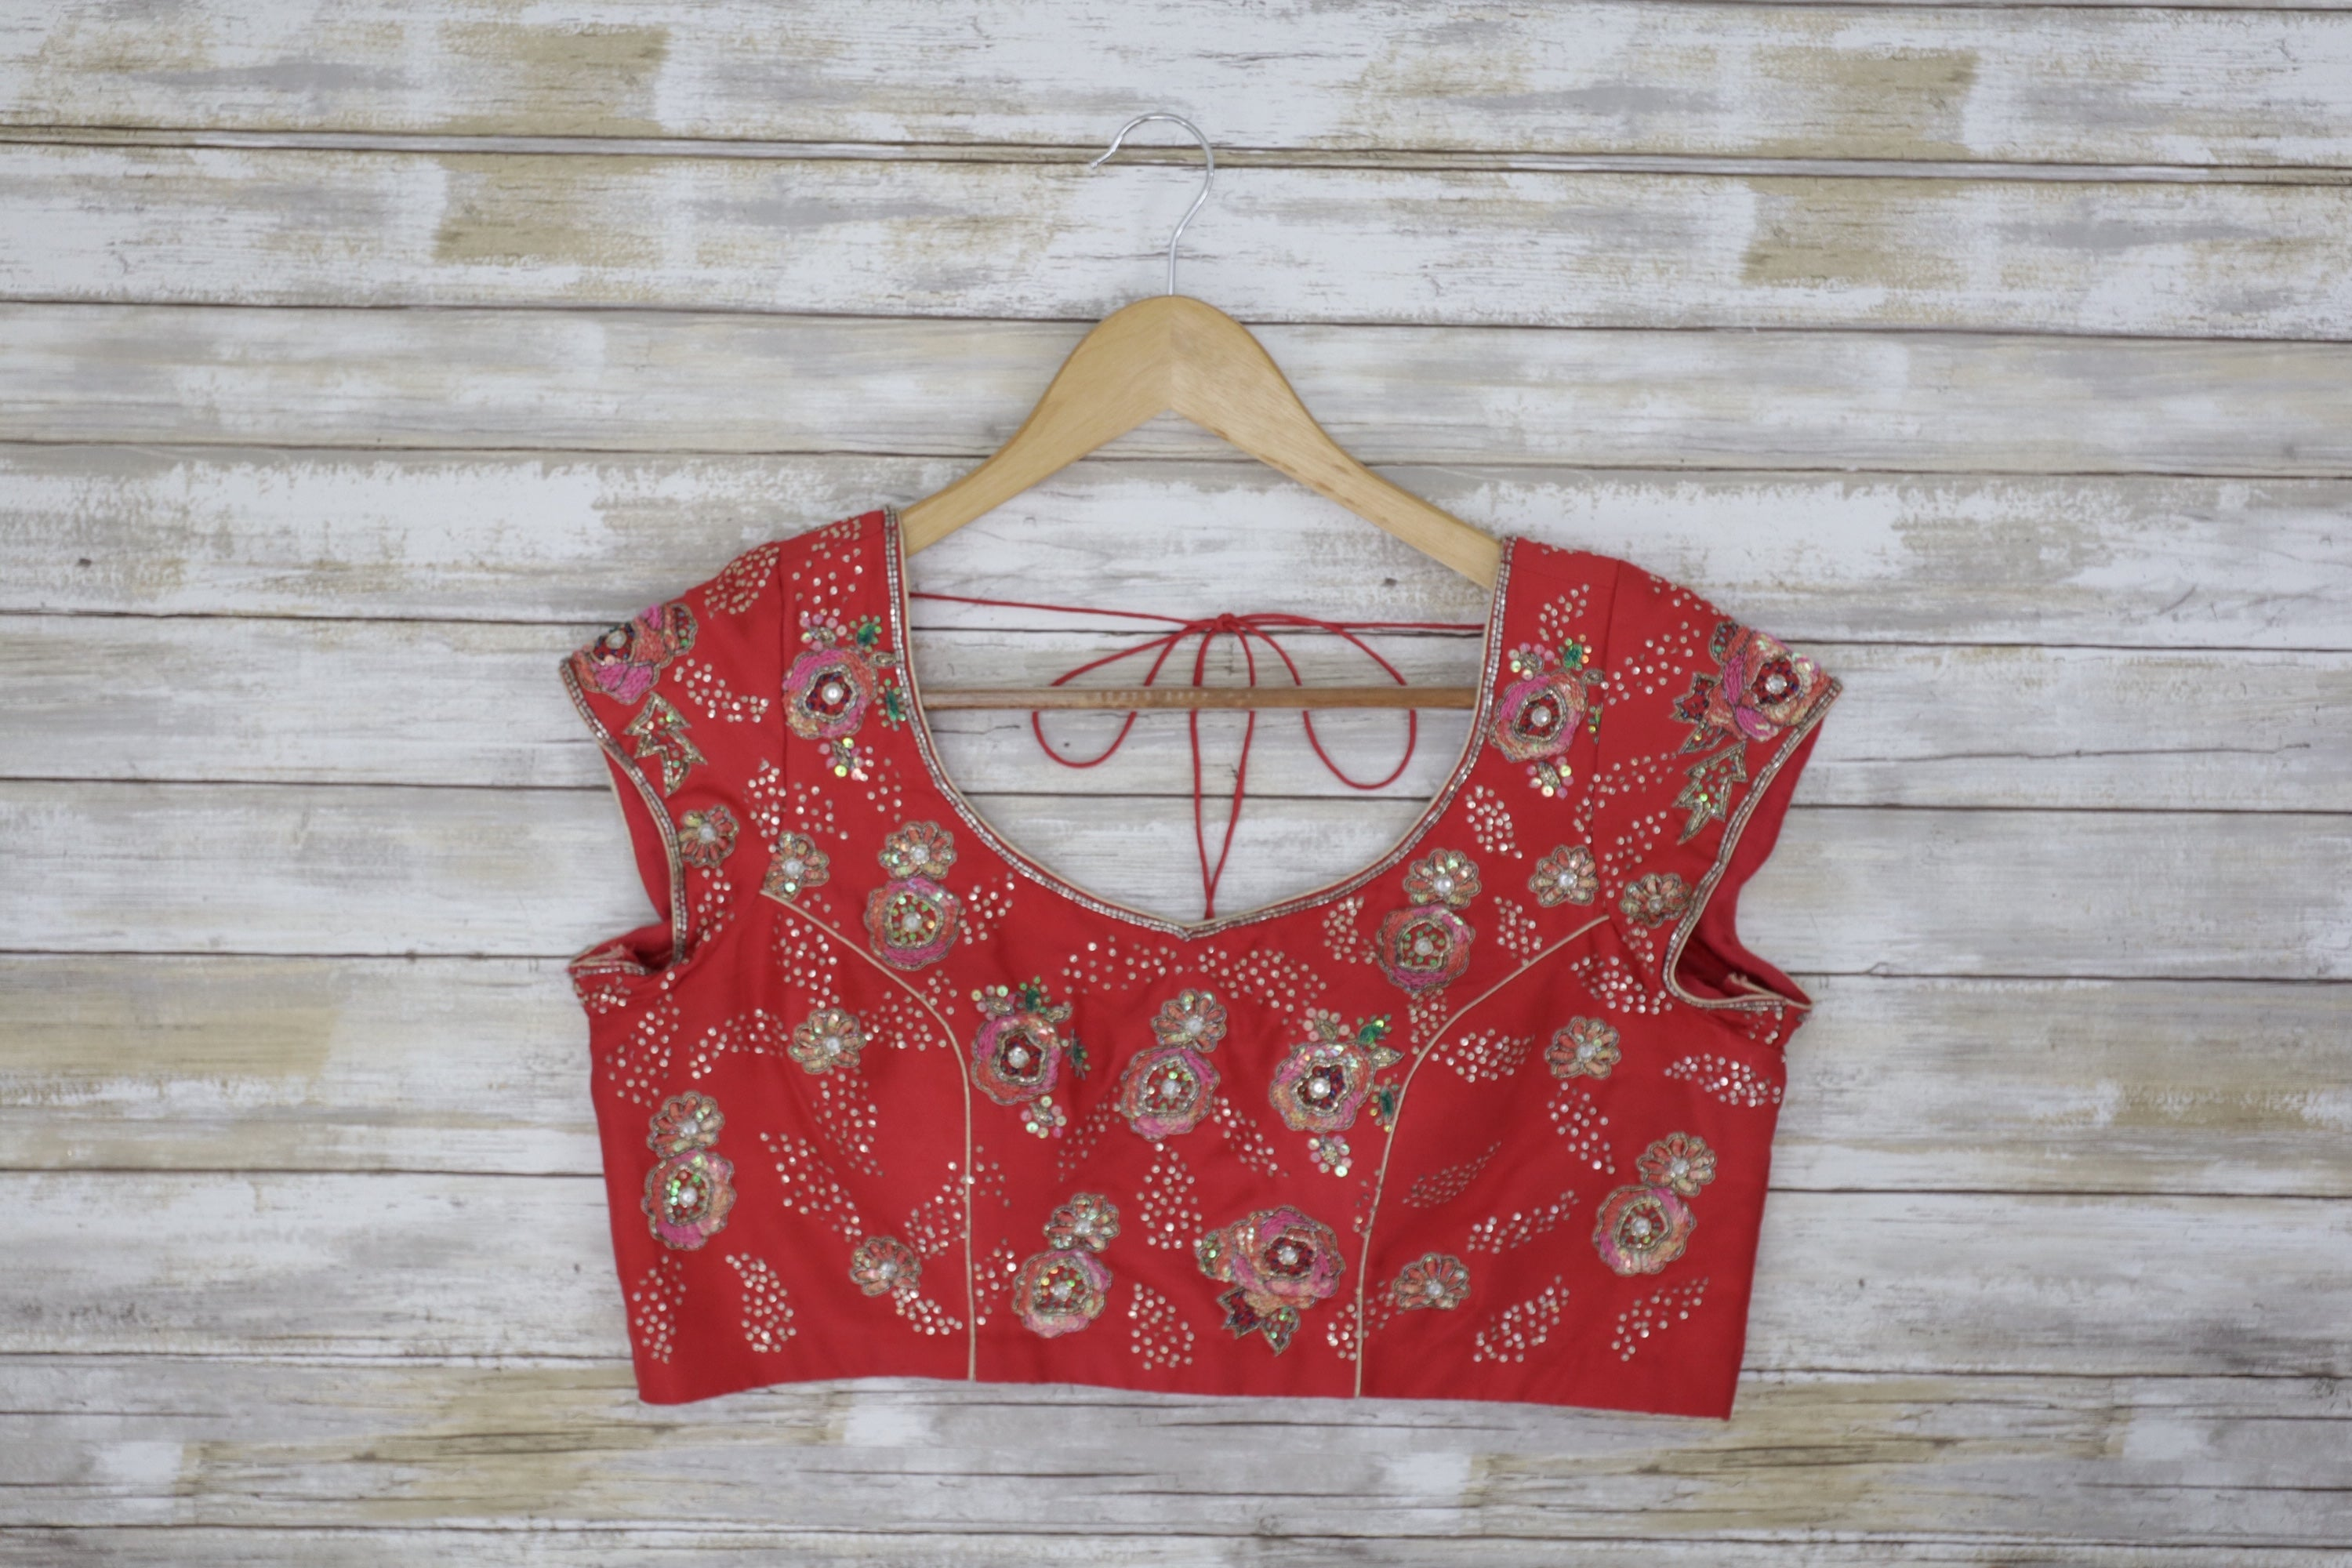 Salmon pink short sleeved blouse with beaded floral design and open back